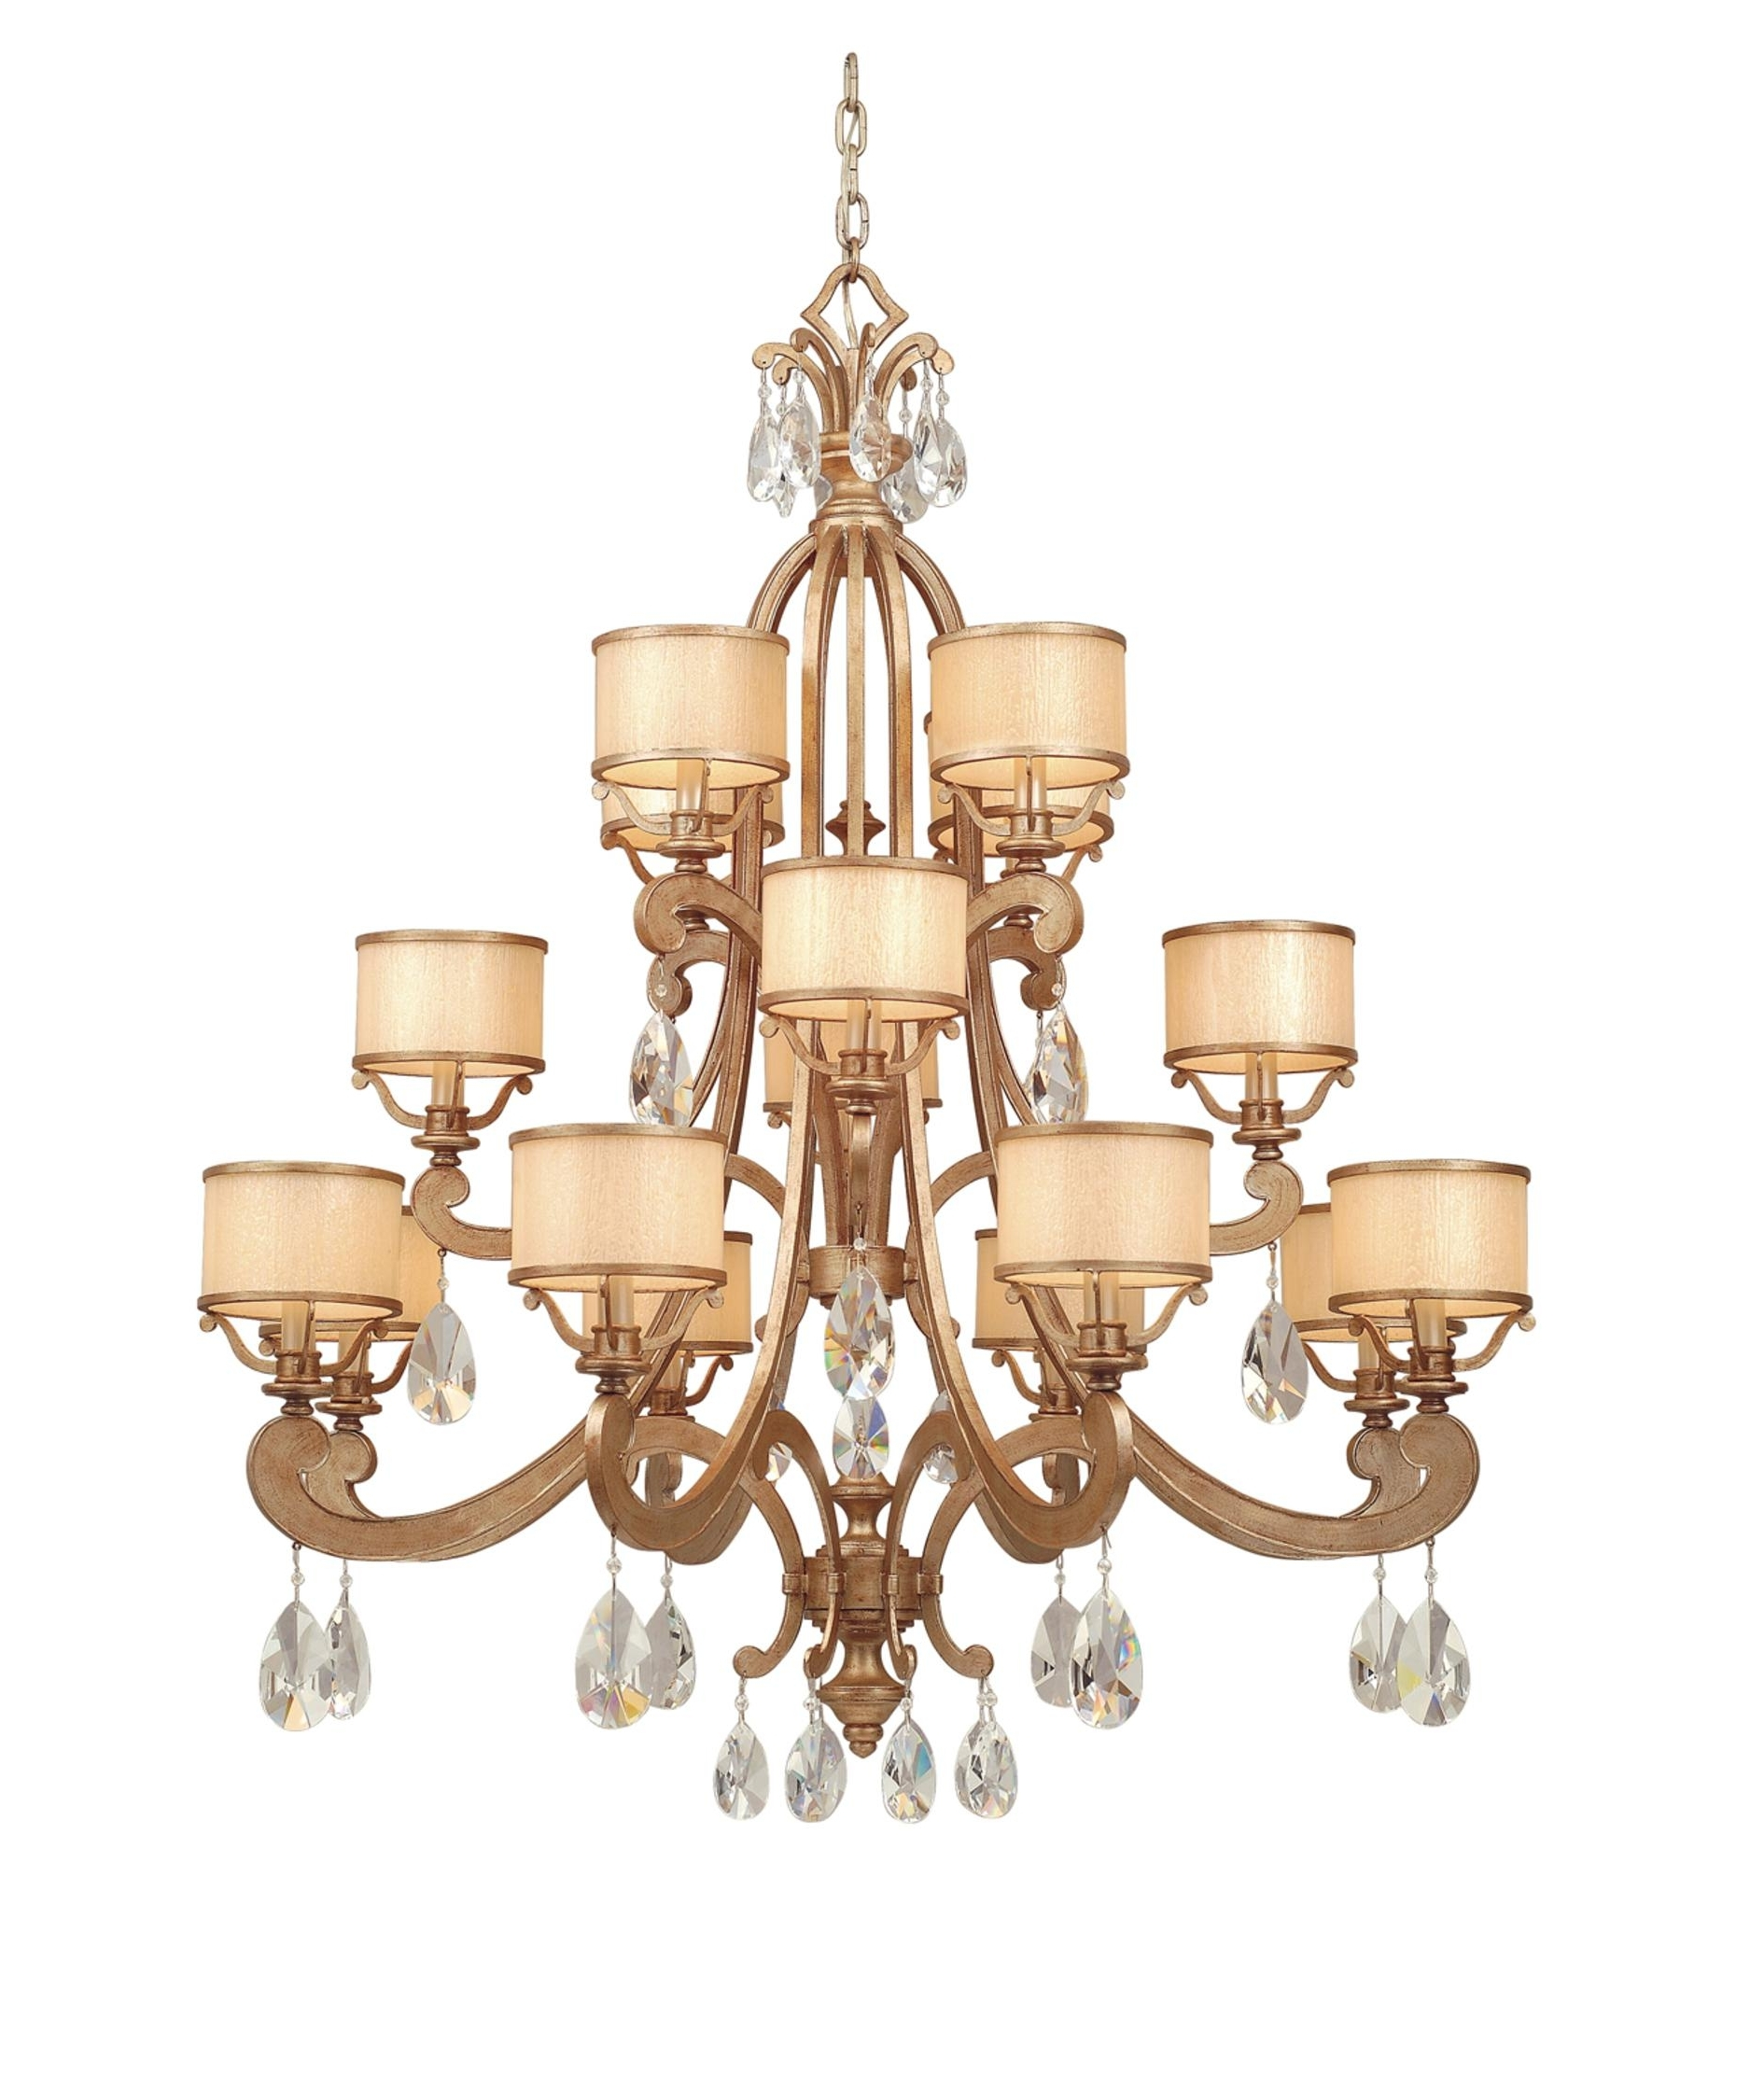 Cream Crystal Chandelier In Well Liked Corbett Lighting Ro 016 Roma 43 Inch Wide 16 Light Chandelier (View 4 of 20)